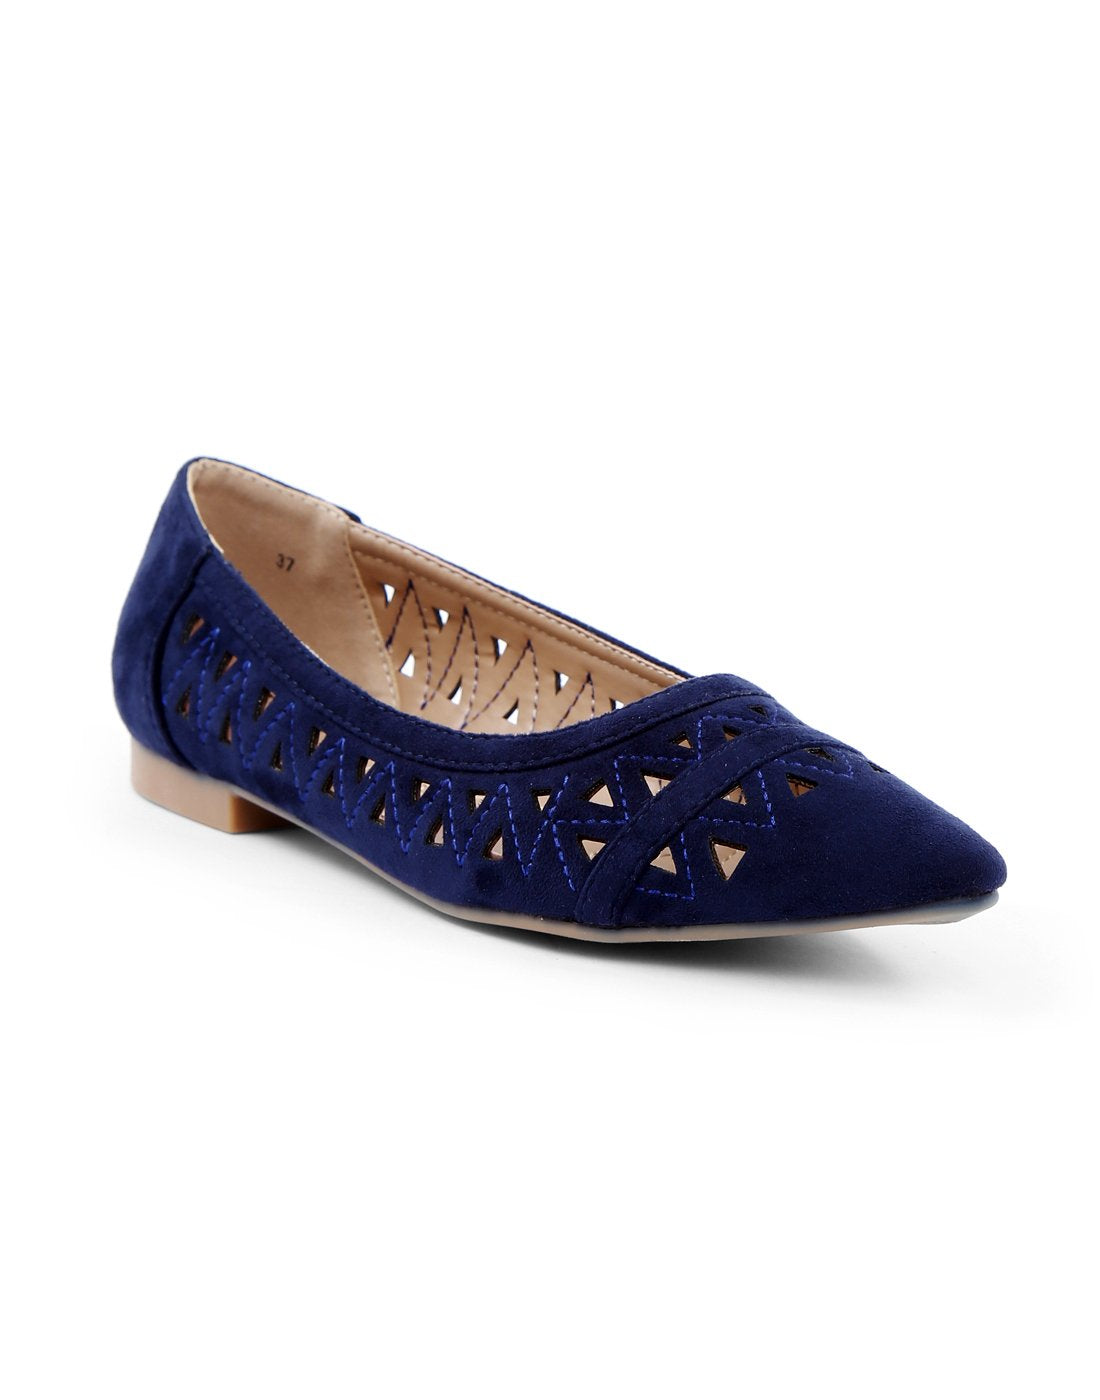 Navy Blue Ballerinas